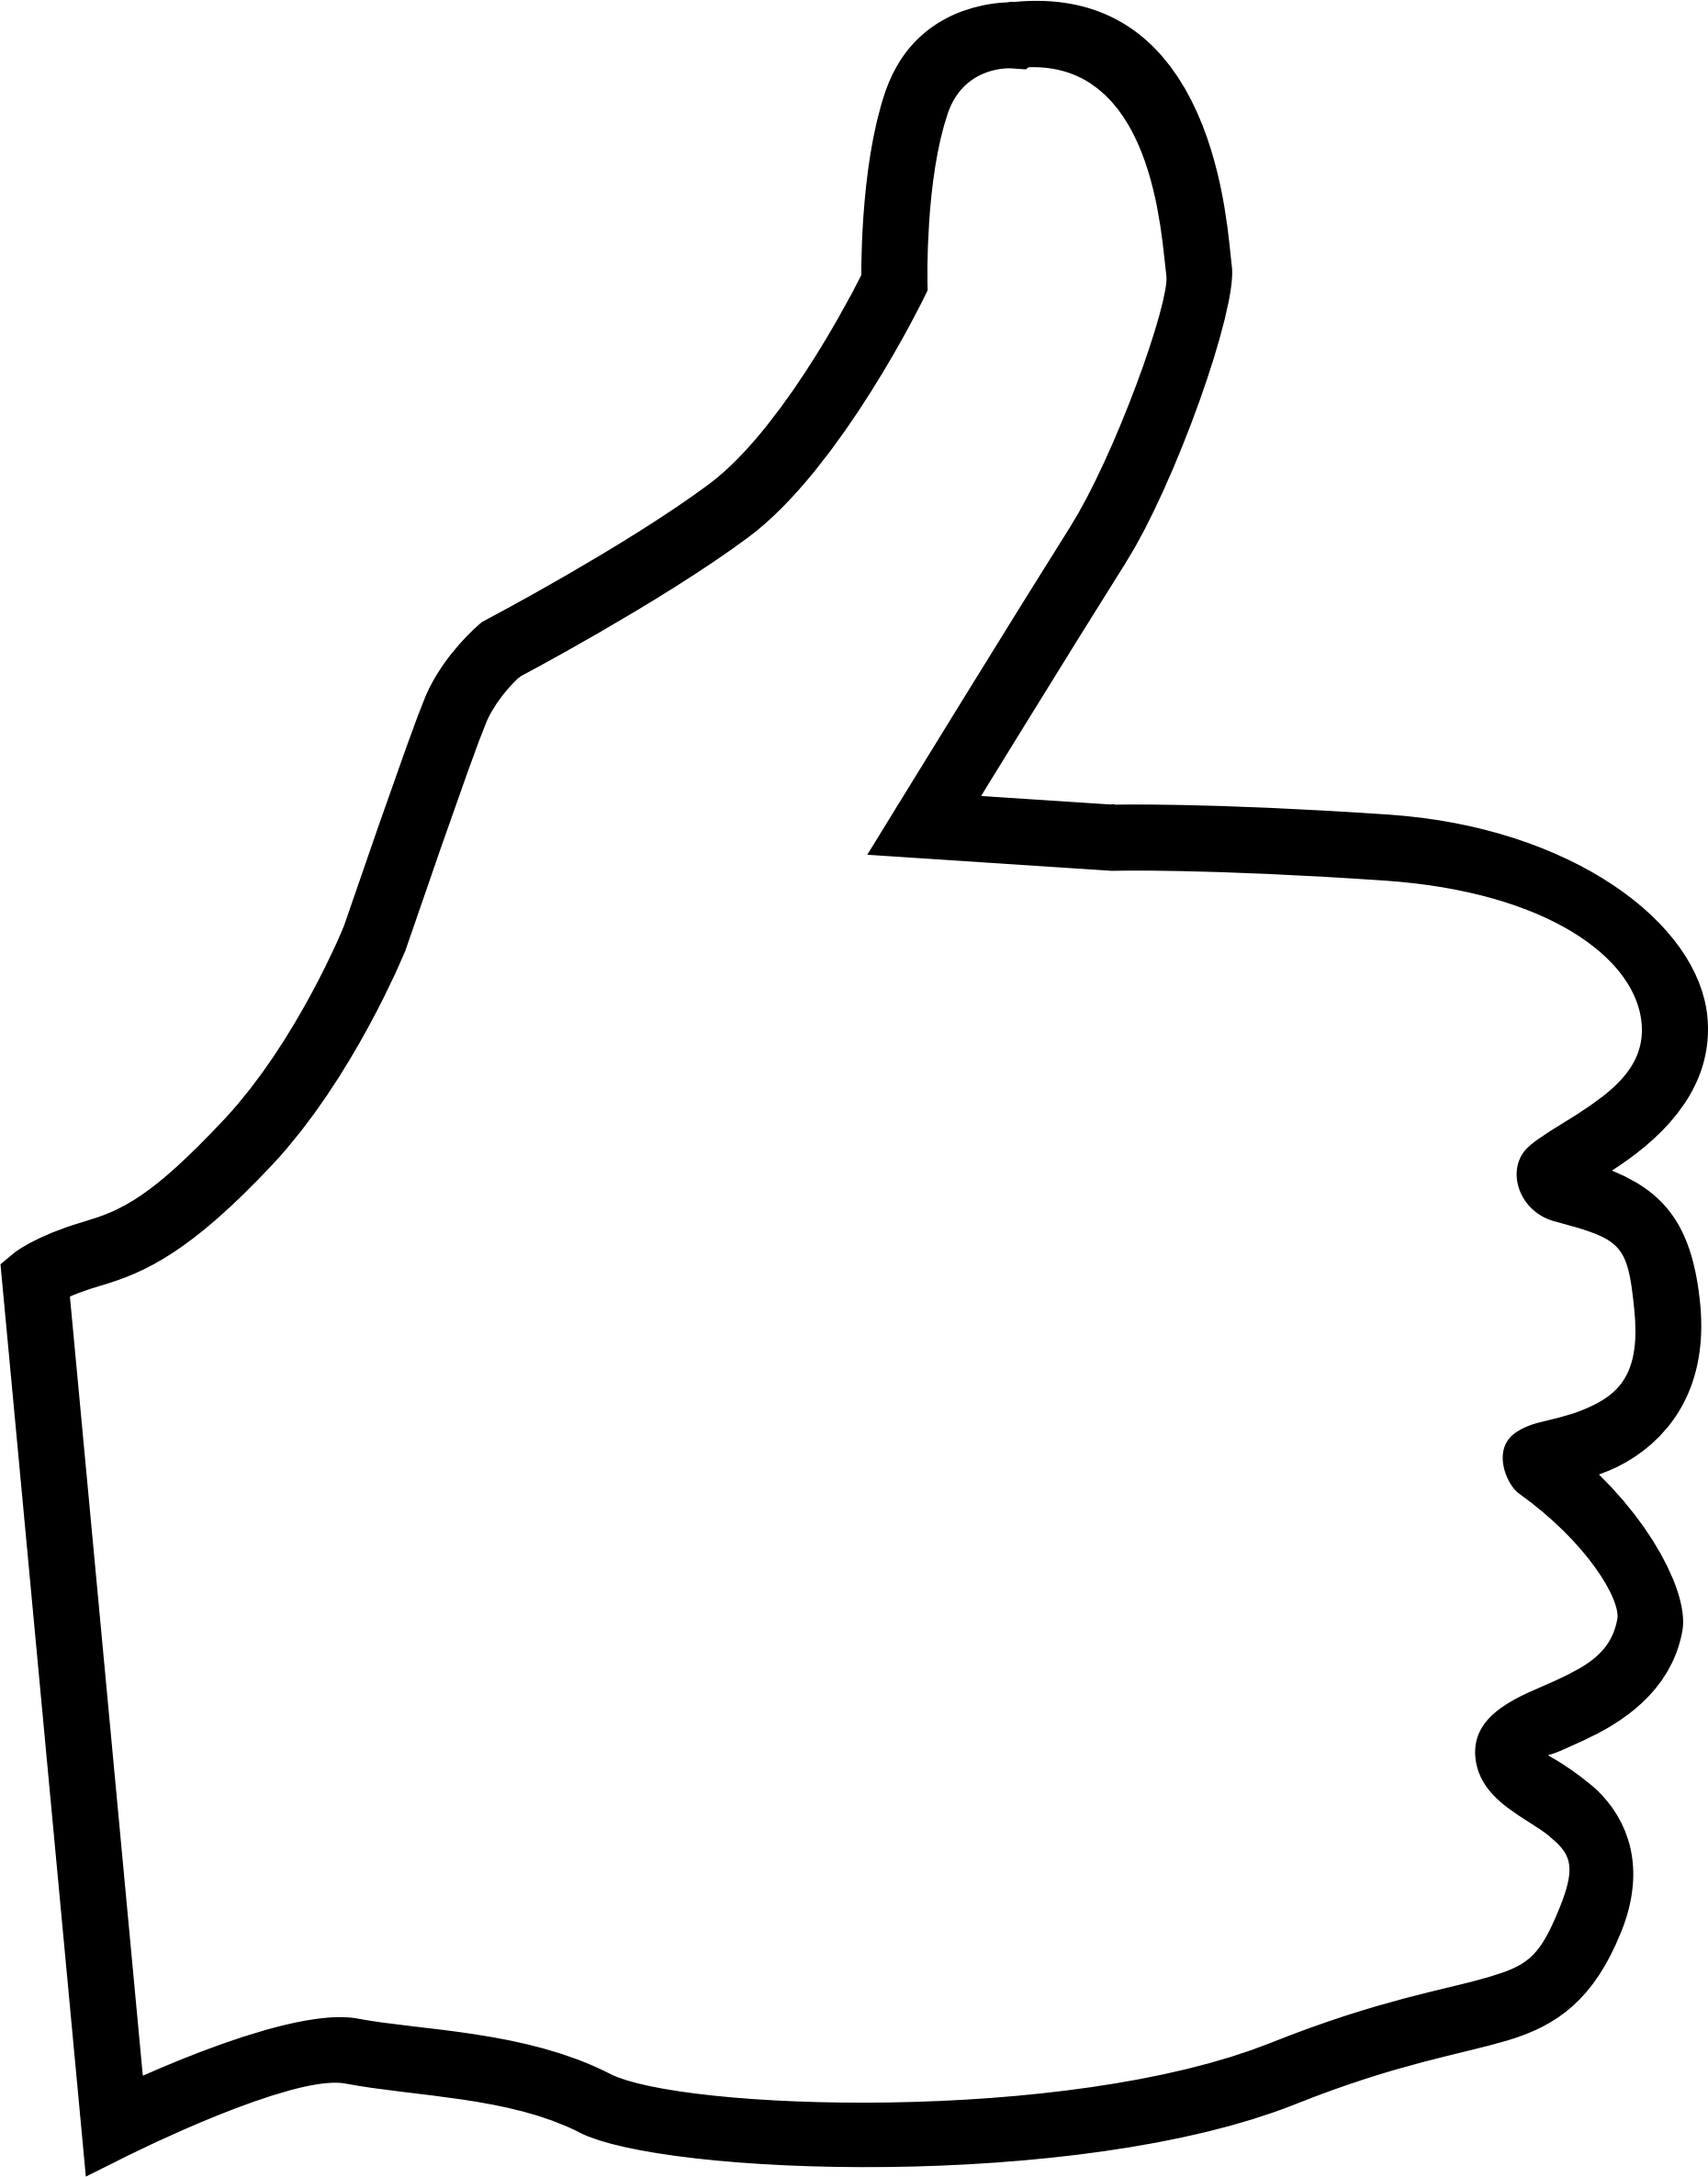 Book clipart thumbs up Thumbs Thumbs Up Clipart Up